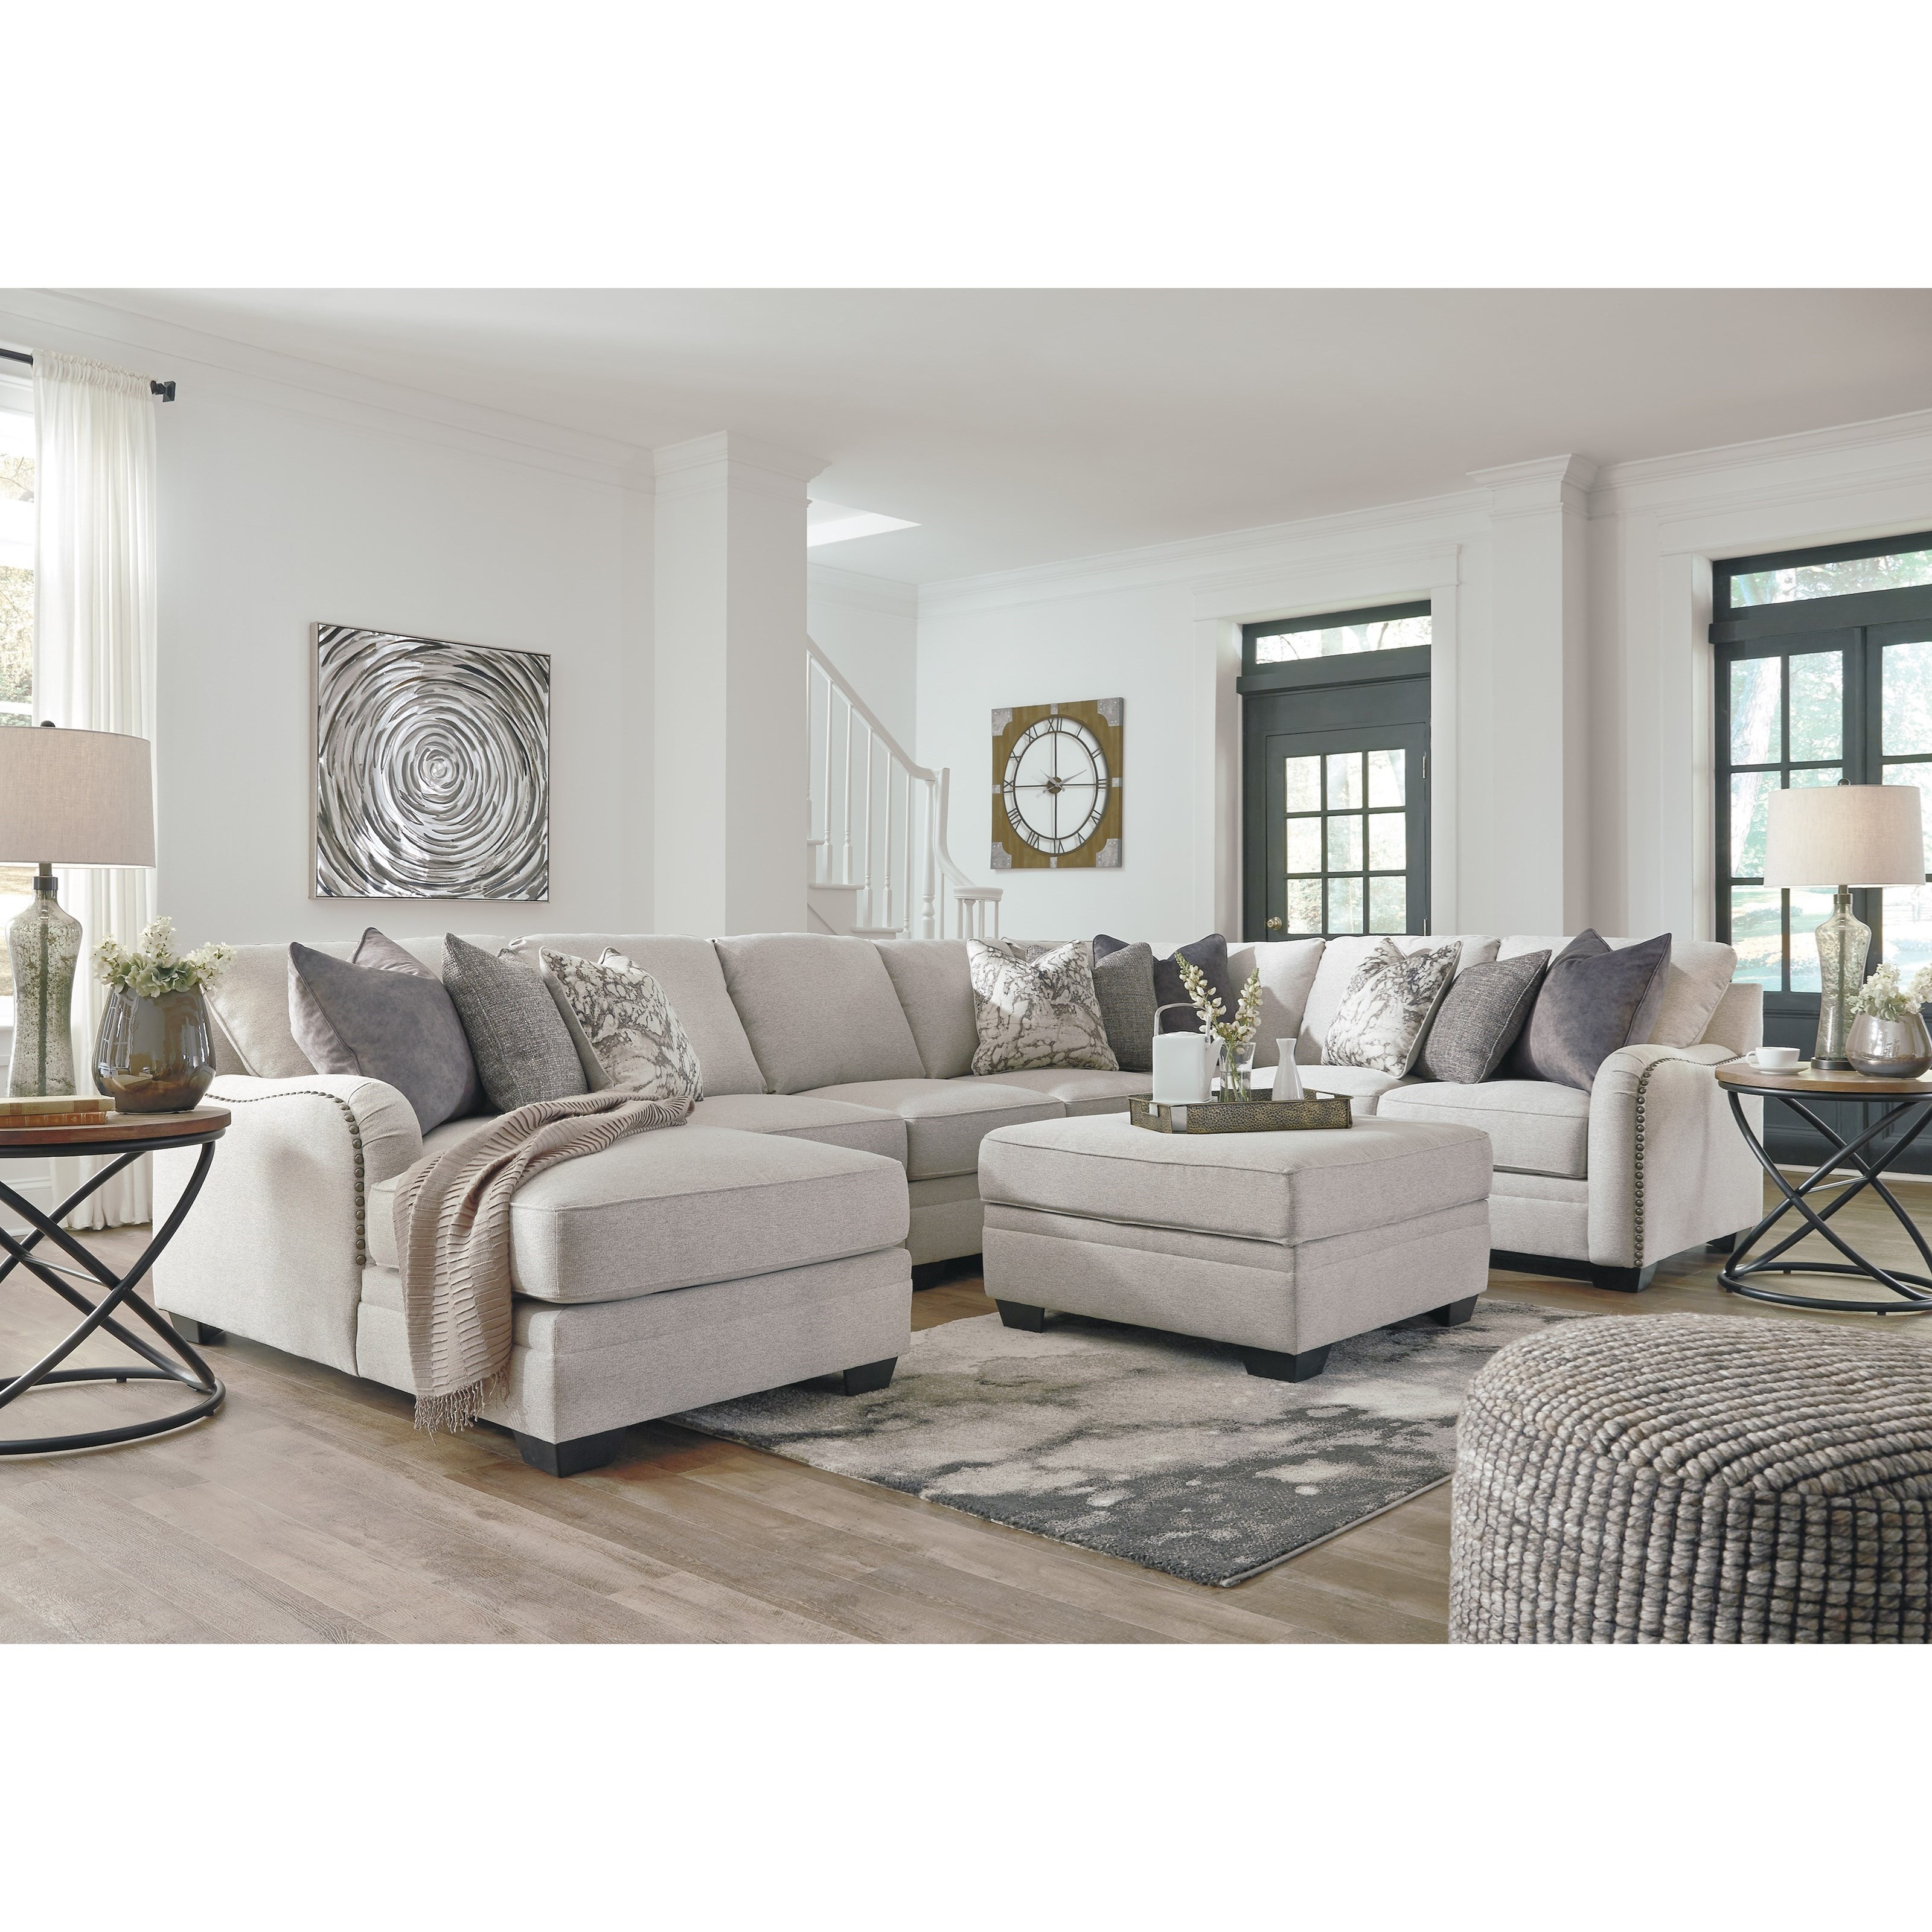 Dellara Stationary Living Room Group by Benchcraft at Zak's Warehouse Clearance Center